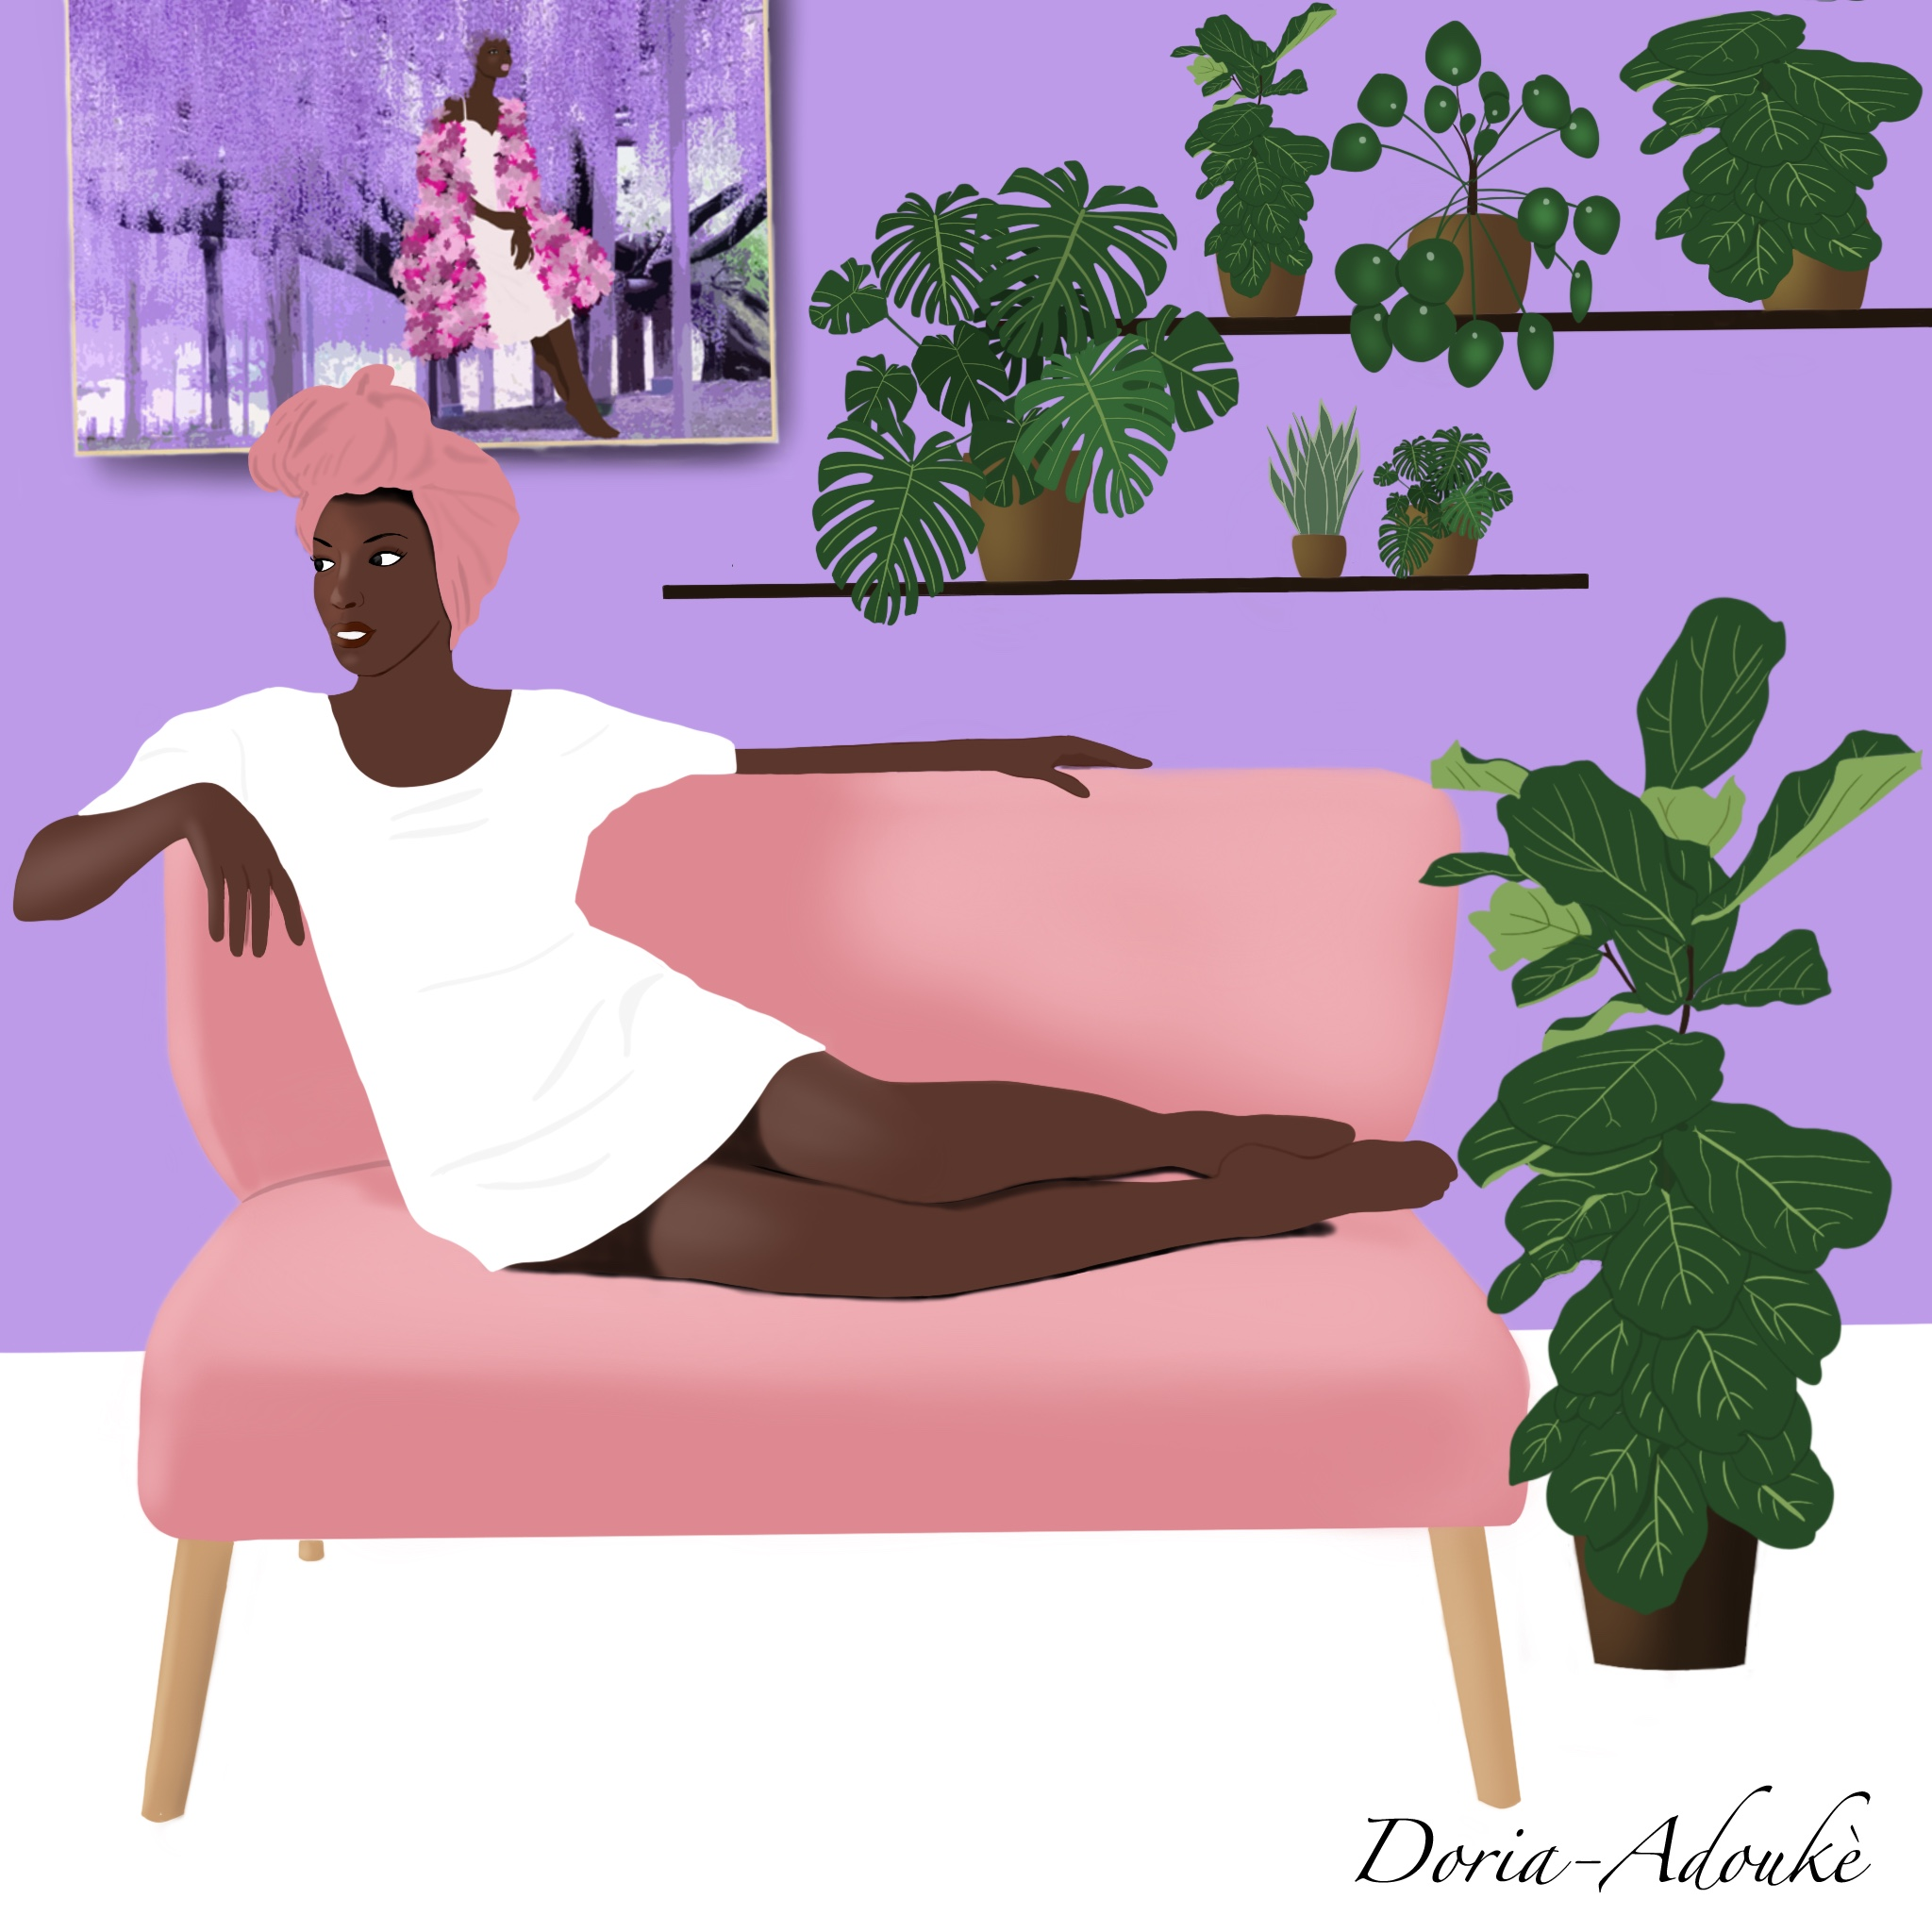 black woman lifestyle illustration